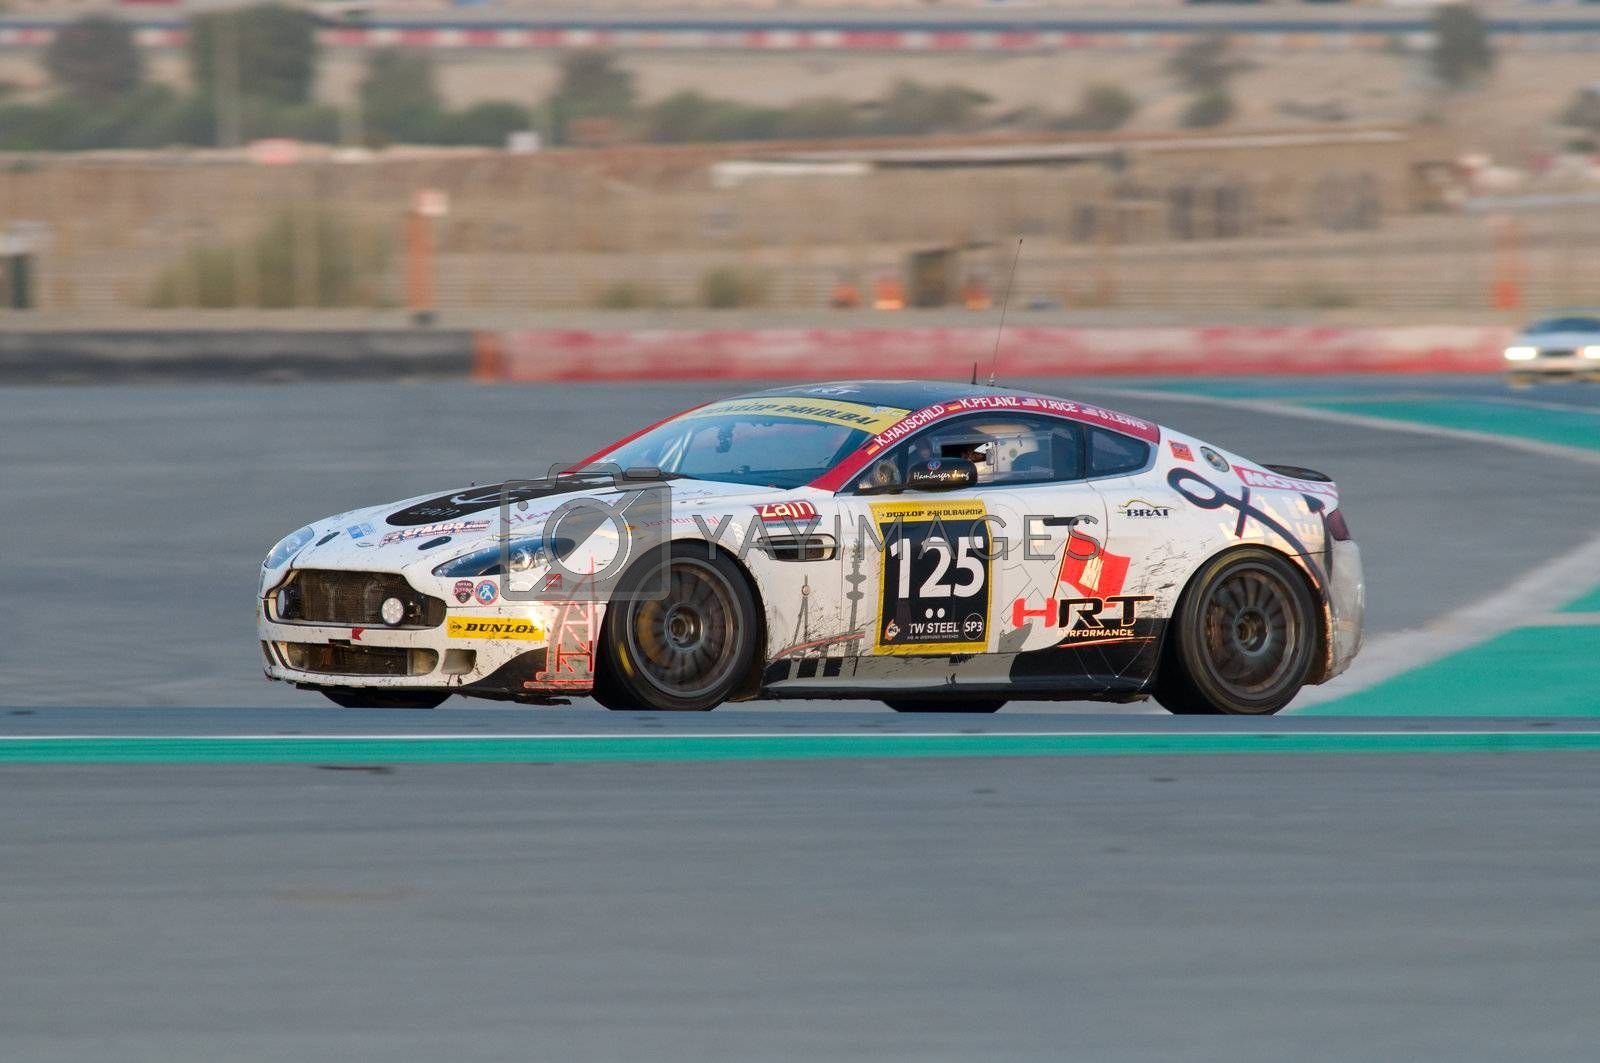 DUBAI - JANUARY 14: Car 119, an Aston Martin Vantage N24 GT4, during the morning hours of the 2012 Dunlop 24 Hour Race at Dubai Autodrome on January 14, 2012.